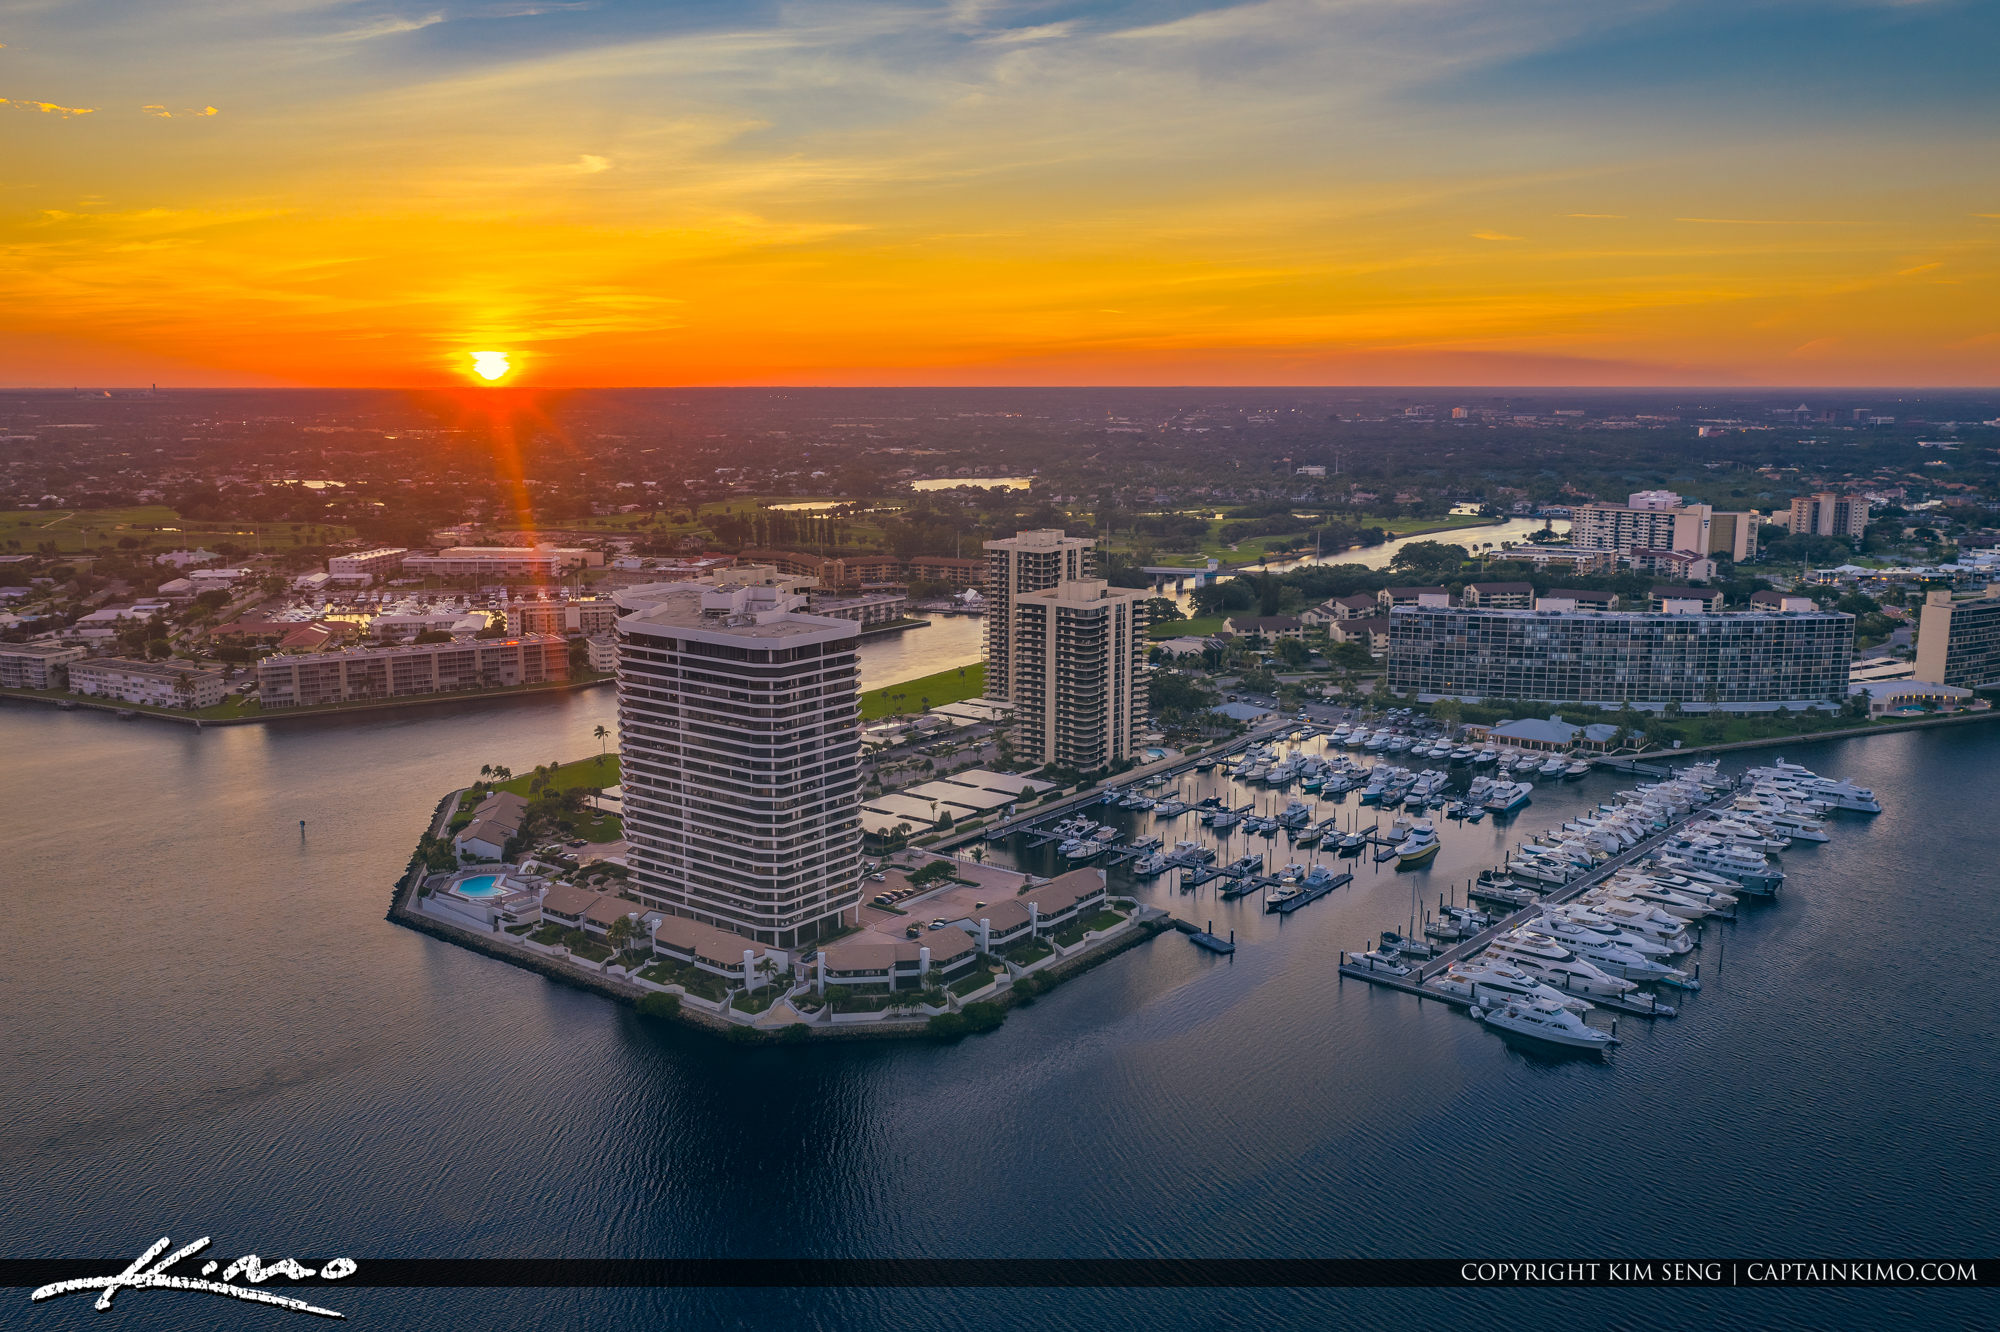 Old Port Cove Marina North Palm Beach Aerial Photography Sunset